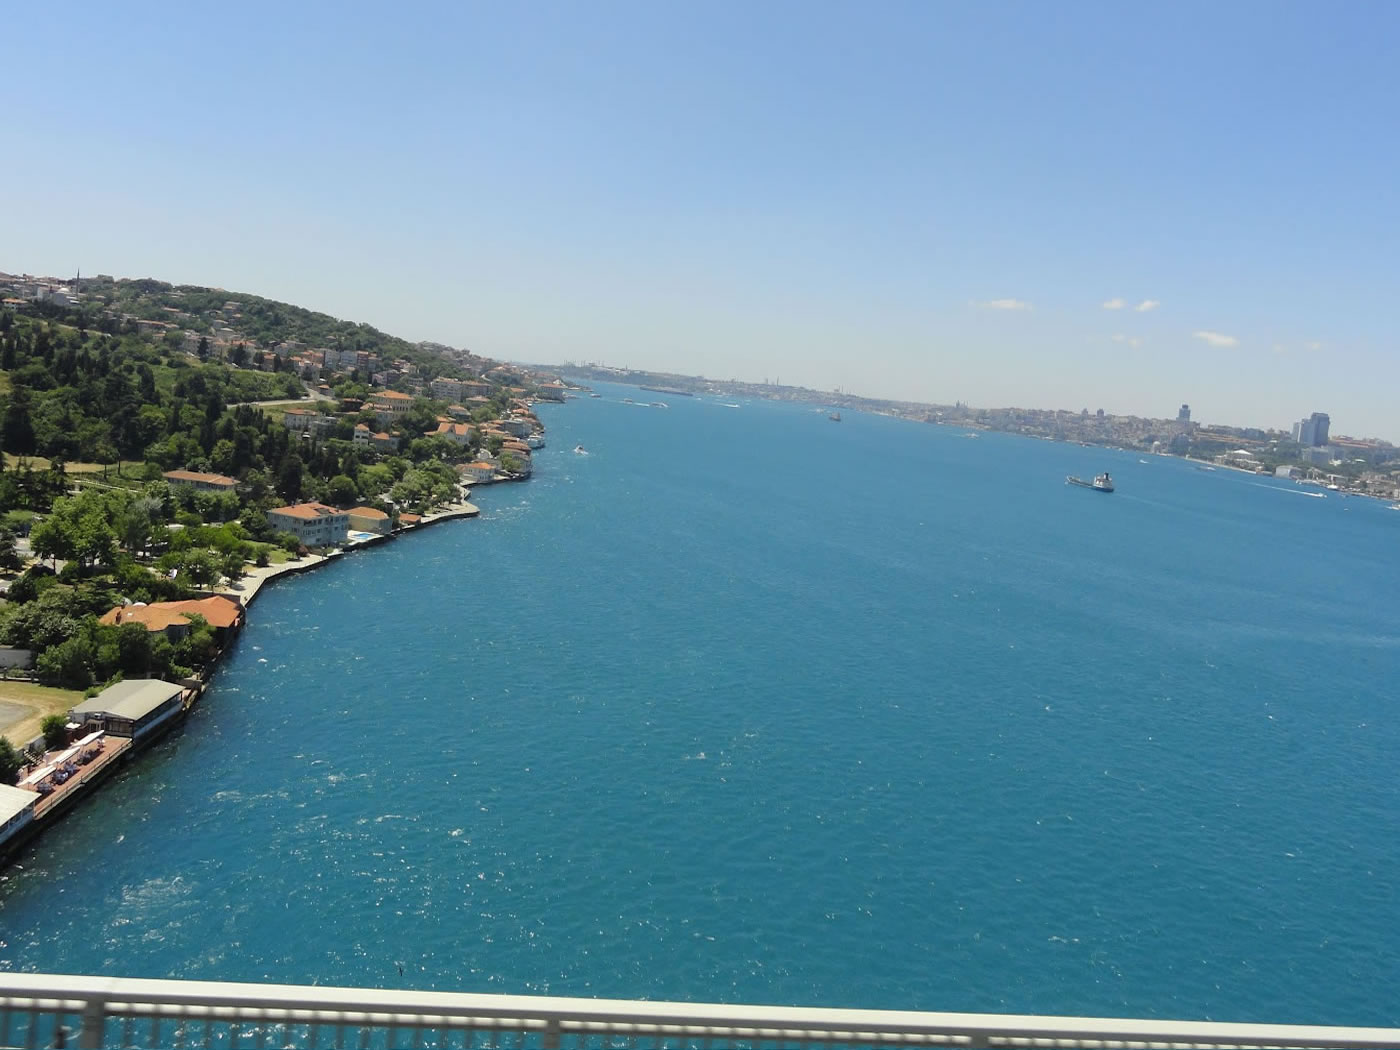 Bosphorus And Black Sea Cruise With Lunch On Board The Boat